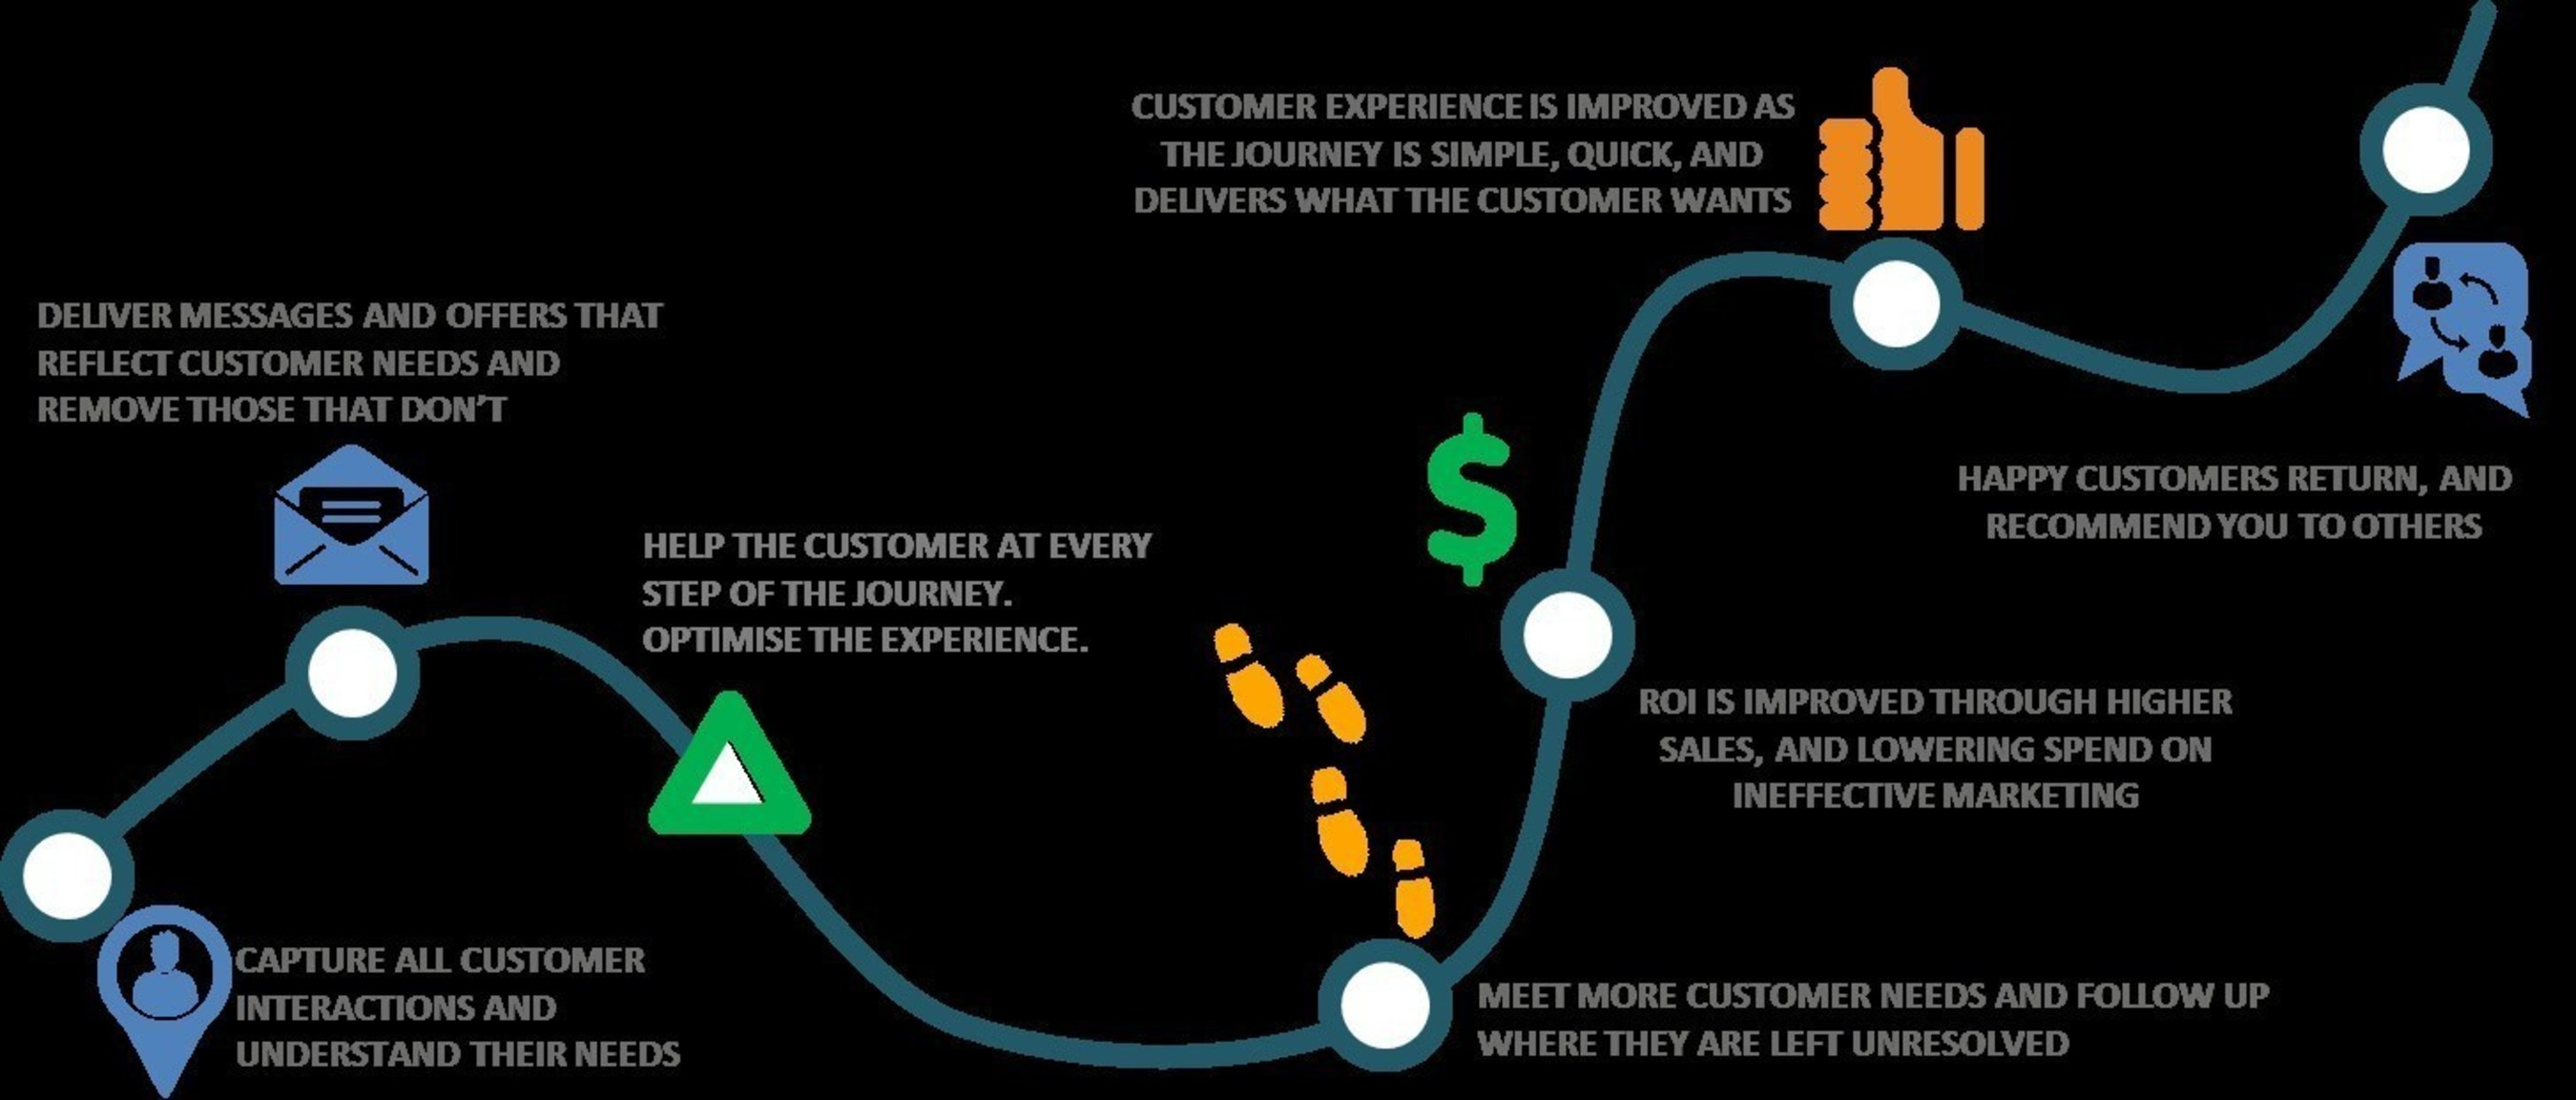 Teradata's Customer Journey Analytic Solution Creates Behavioral Insights to Deliver a Distinct Customer Experience